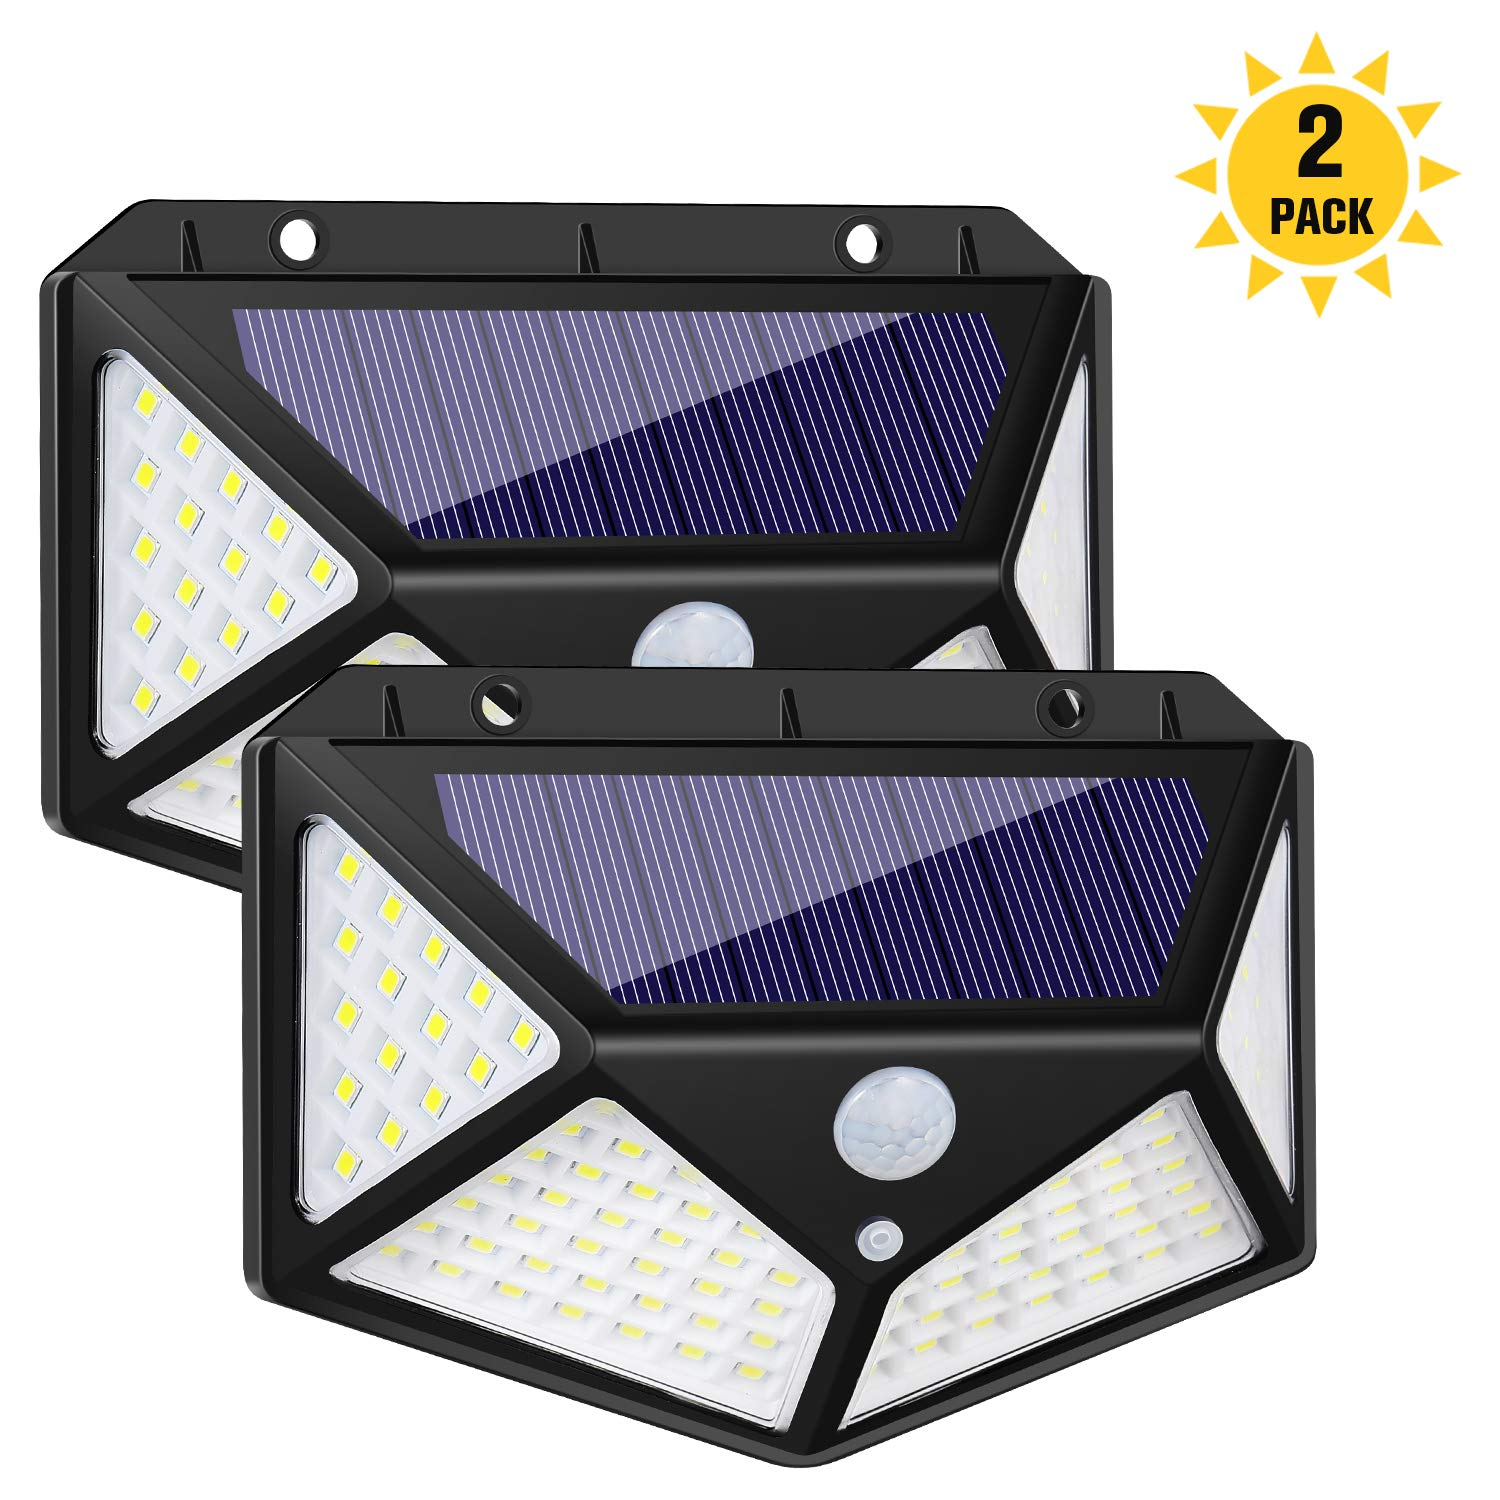 Wide Angle Outdoor Solar Light, 100 LED Super Bright, Motion Sensor Light with 3 Working Modes, Wireless Solar Powered Security Wall Light for Front Door, Backyard, Garage, Pathway, Porch and More, Bl by kozyone